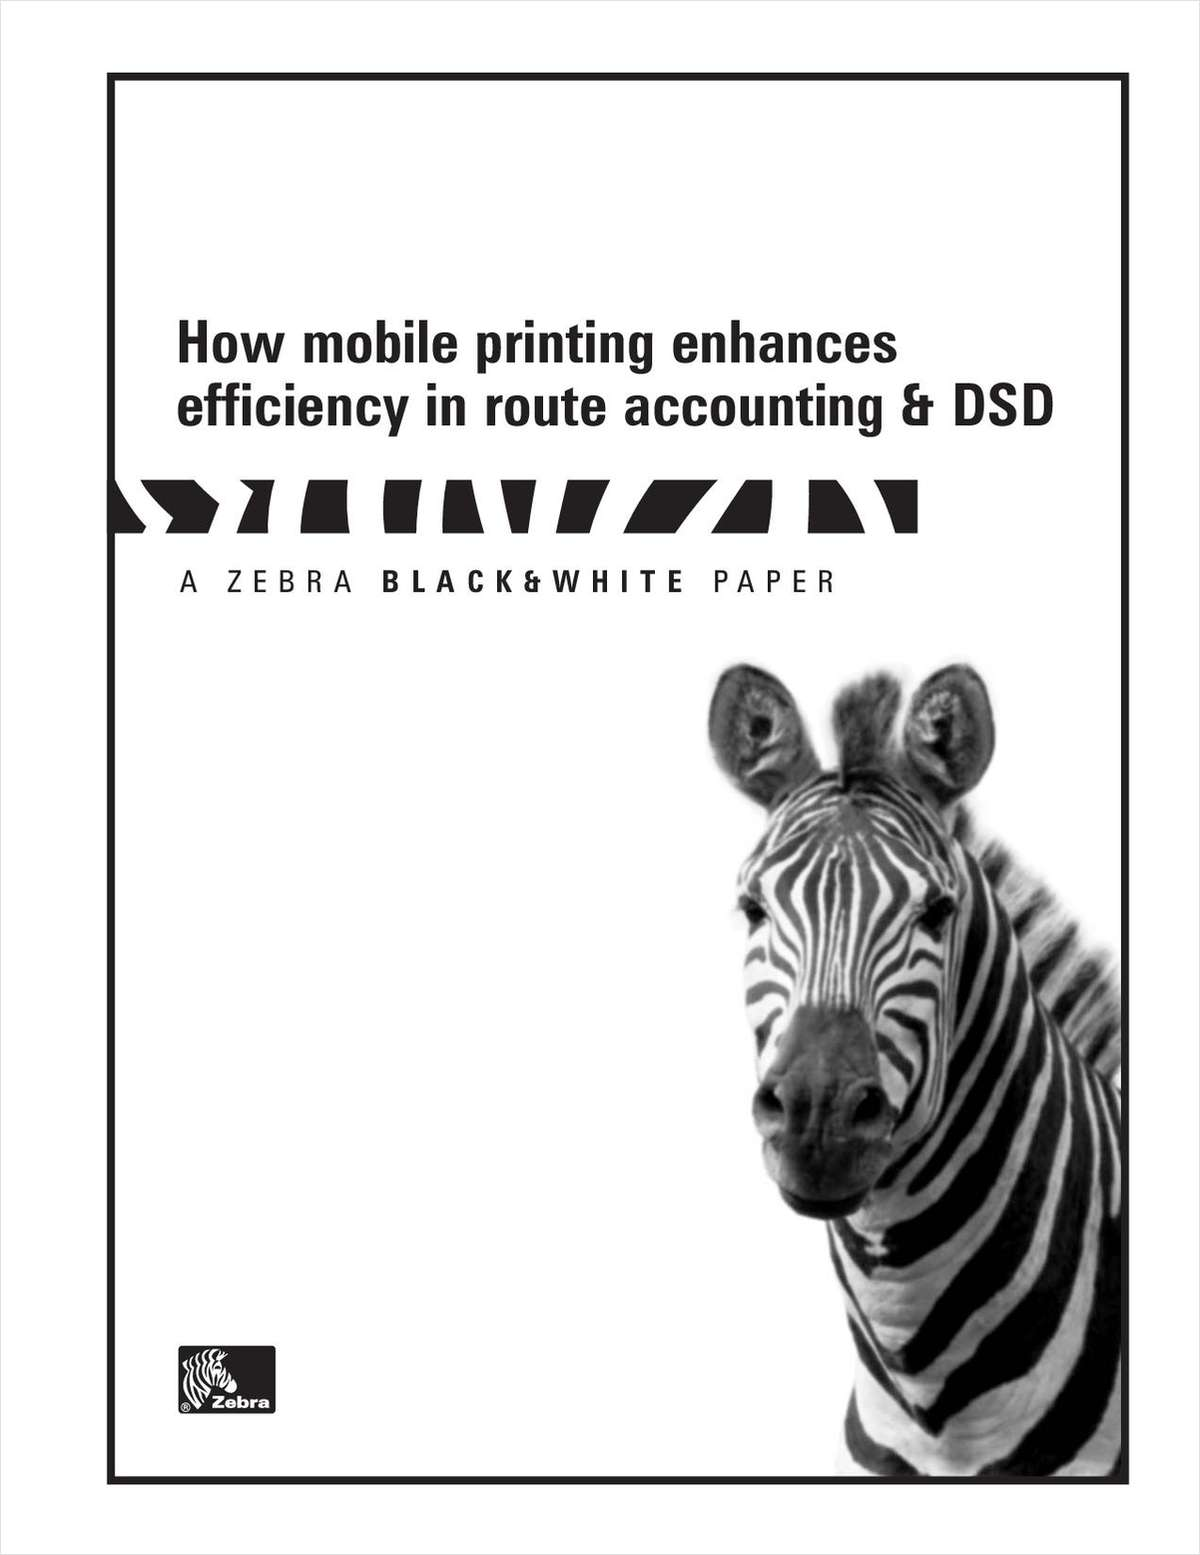 How Mobile Printing Enhances Efficiency in Route Accounting & DSD